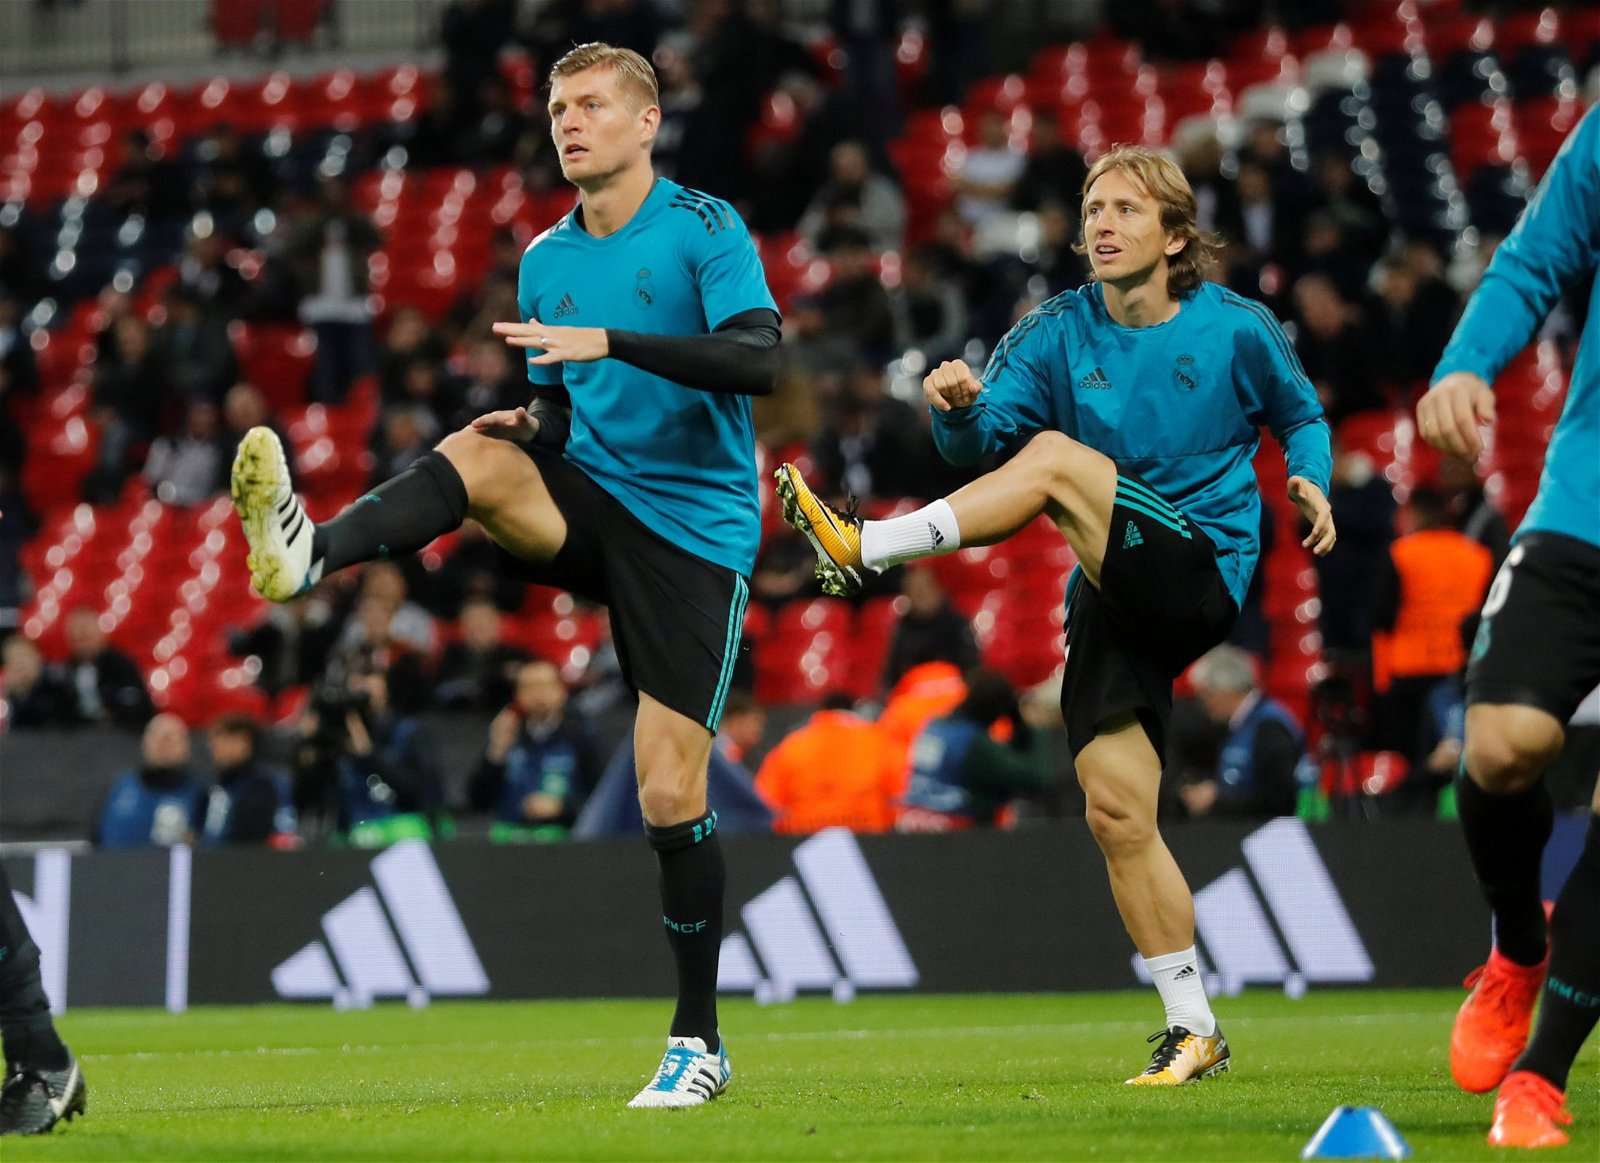 Toni Kroos and Luka Modric warm up